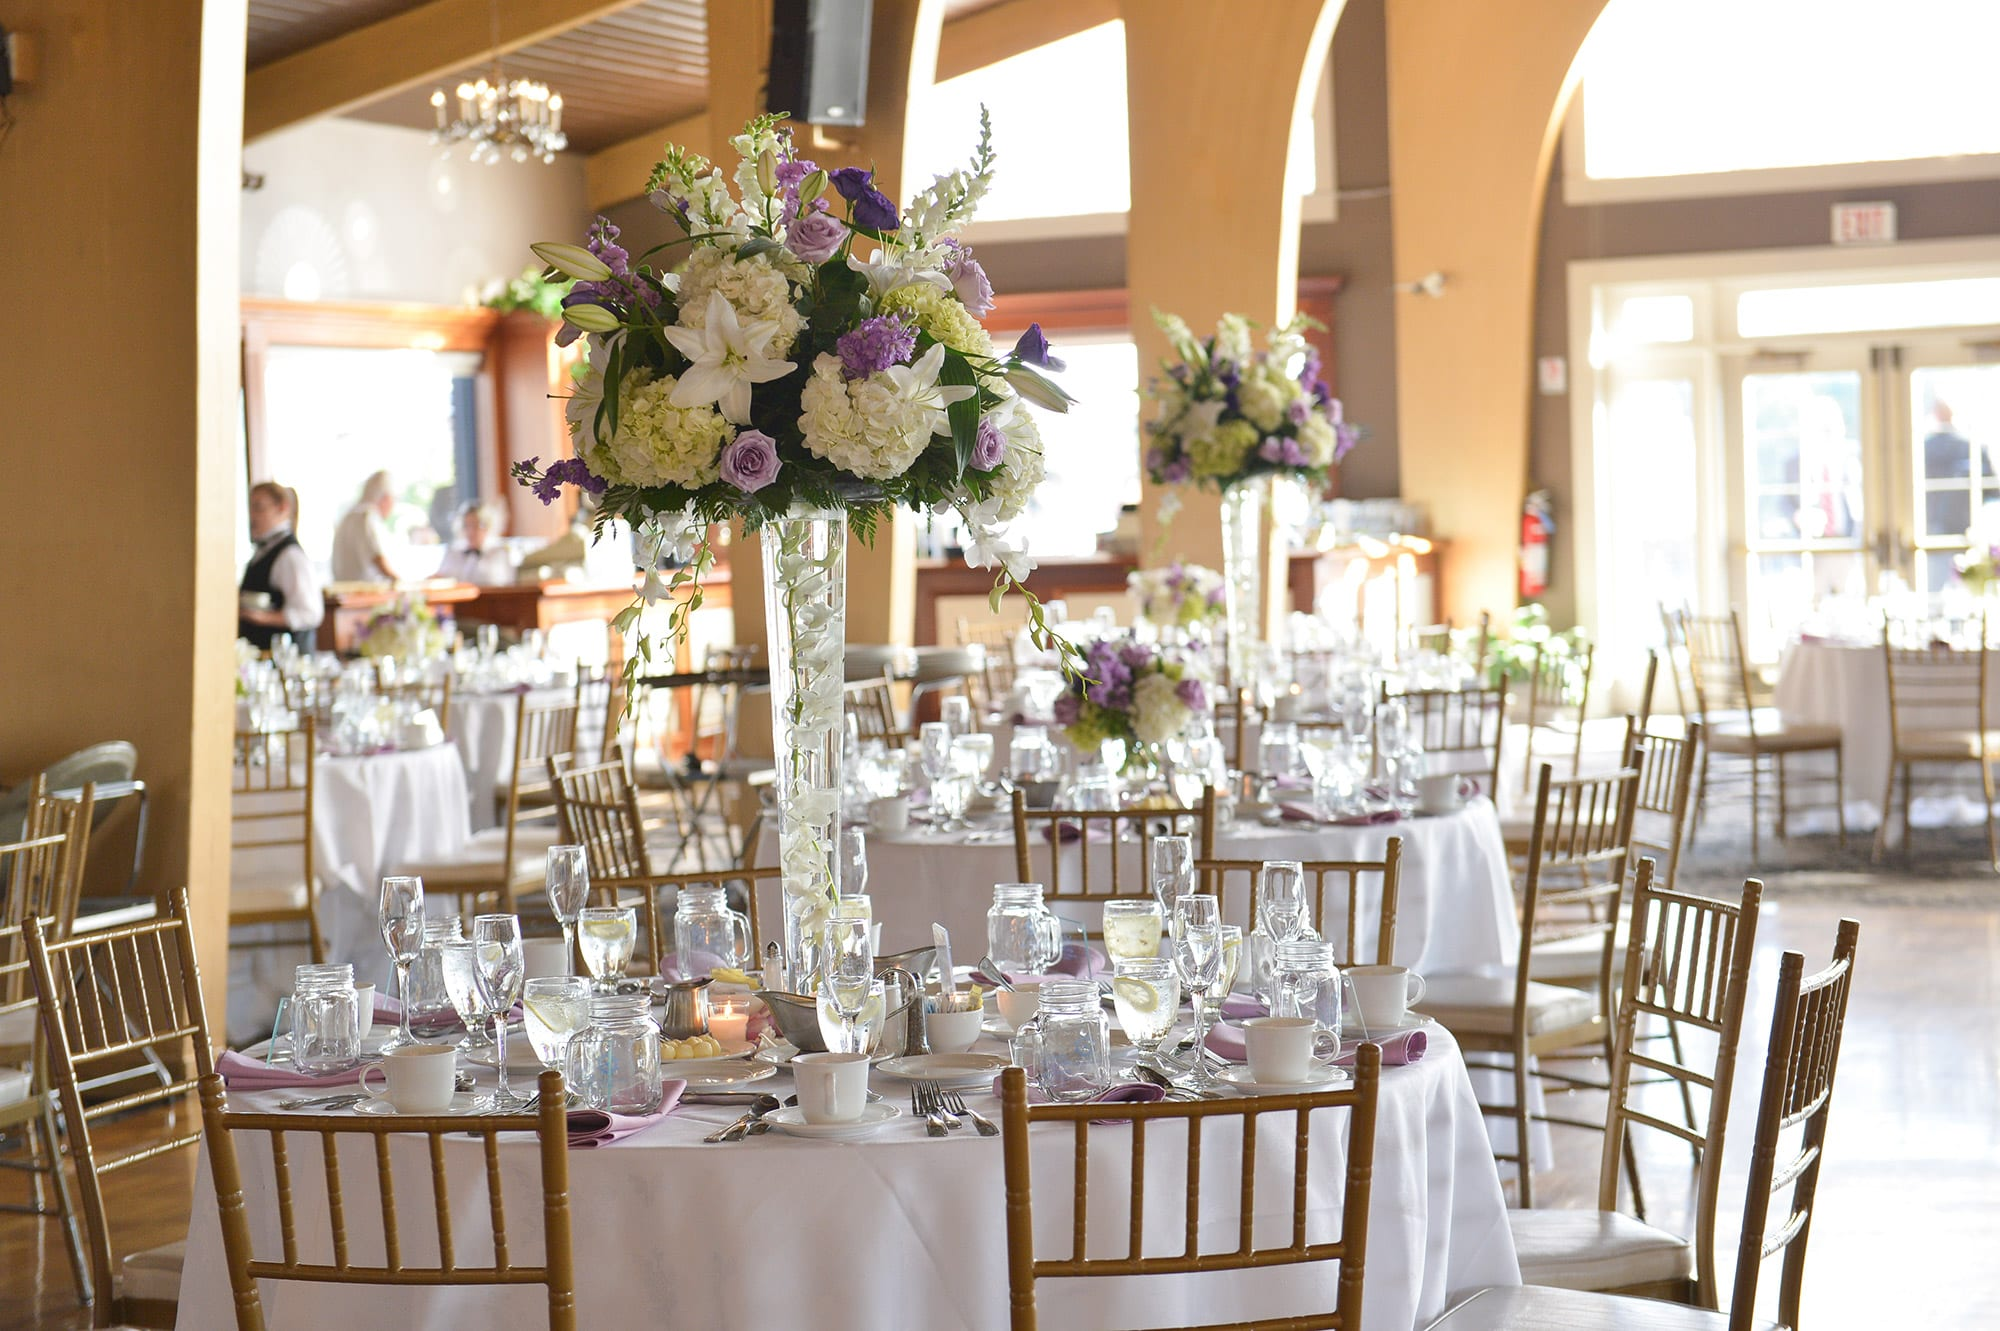 An intricate tablesetting and centerpiece in the Danversport Harborview Ballroom